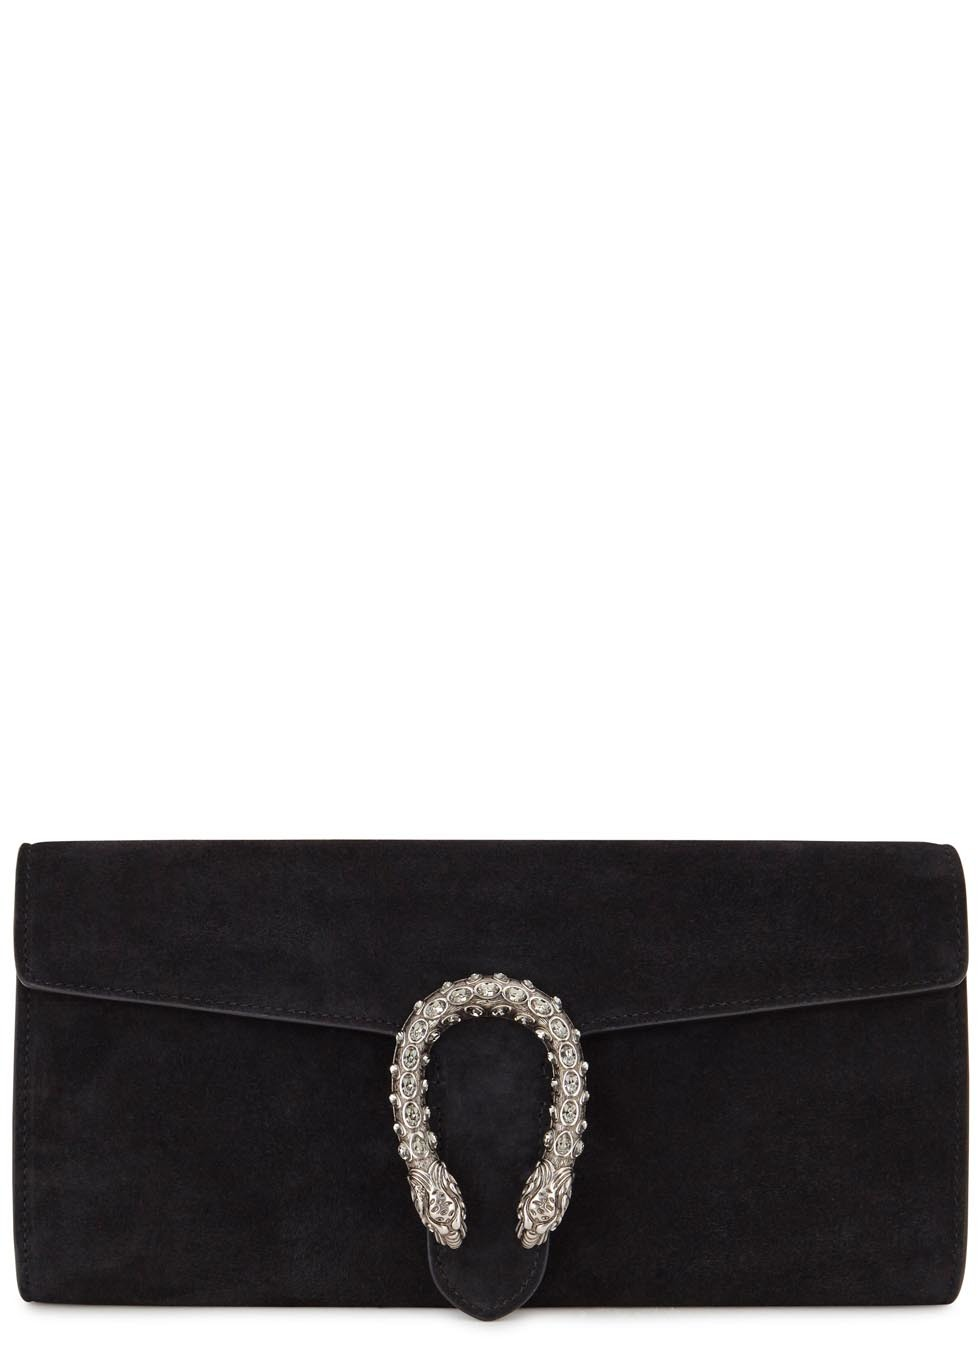 Dionysus Black Suede Clutch - secondary colour: silver; predominant colour: black; occasions: evening, occasion; type of pattern: standard; style: clutch; length: hand carry; size: small; material: suede; pattern: plain; finish: plain; season: s/s 2016; wardrobe: event